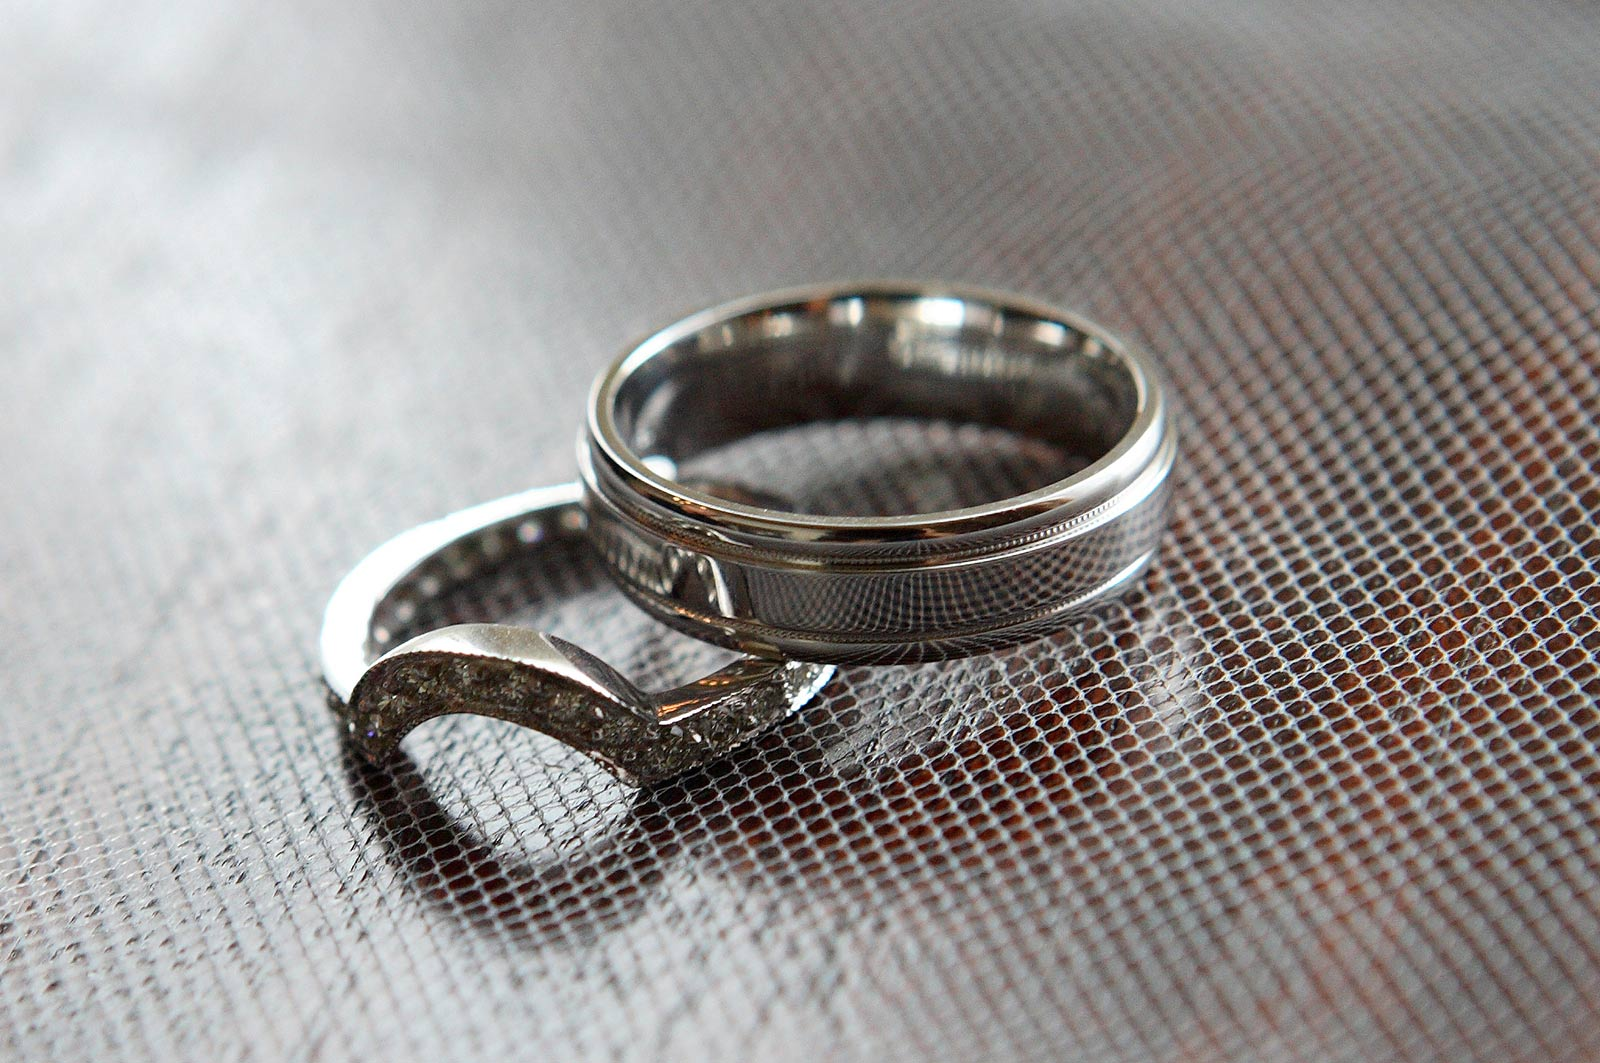 Wedding Rings - Wedding Bands - Detail - Photo by J. Garcia